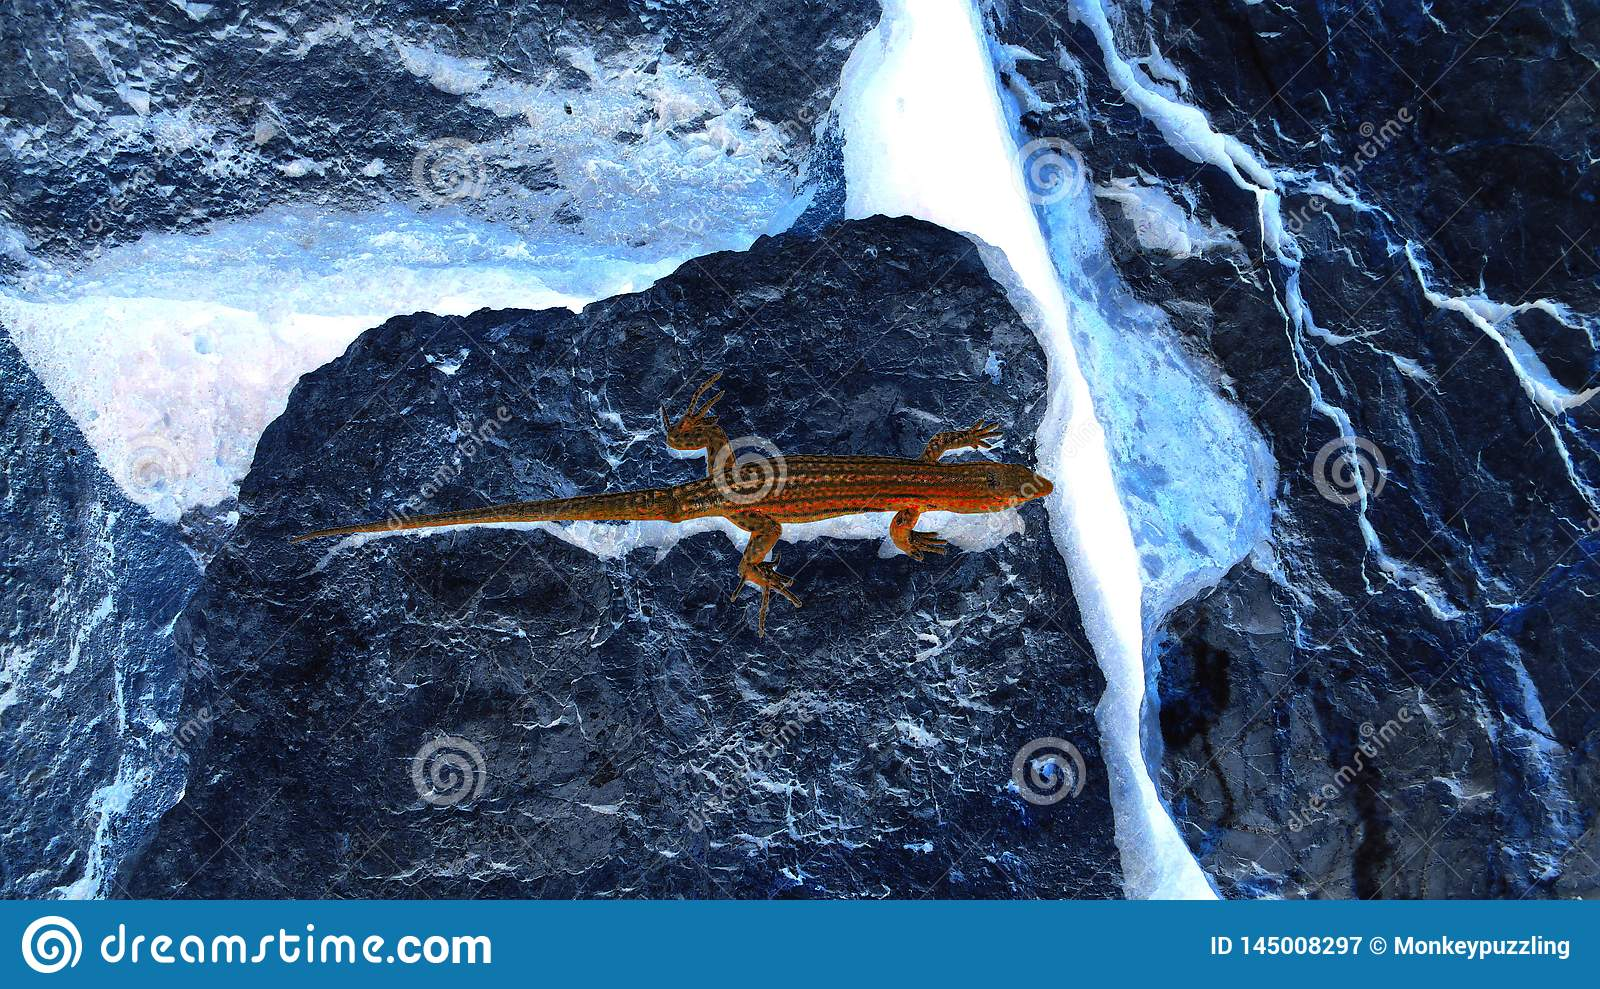 Artistic dark red lizard on dark blue boulders negative